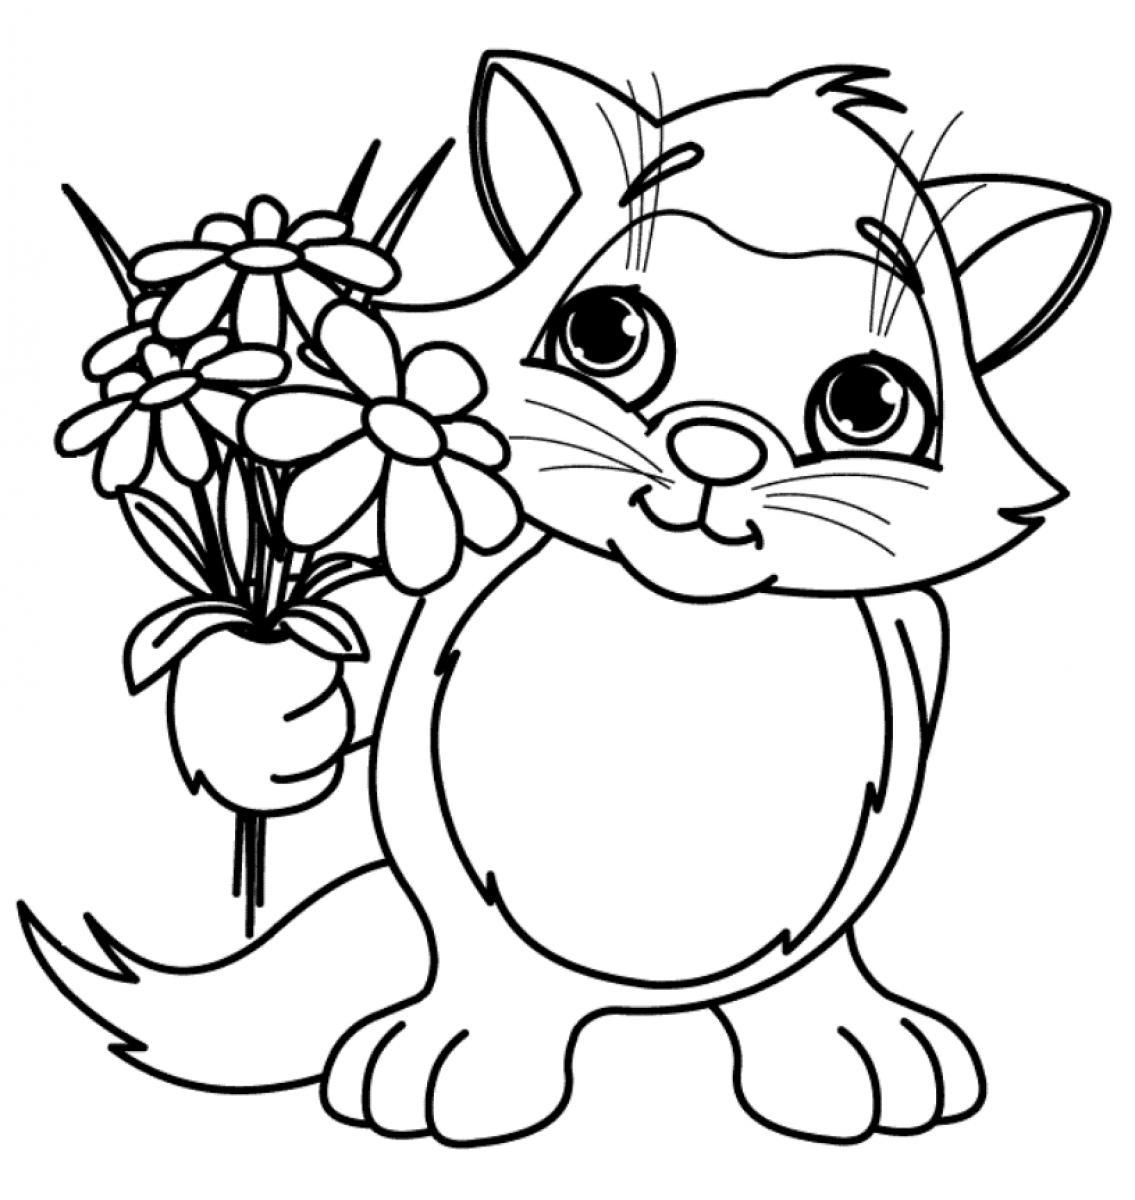 Flower Colouring Picture : Spring flower coloring pages to download and print for free